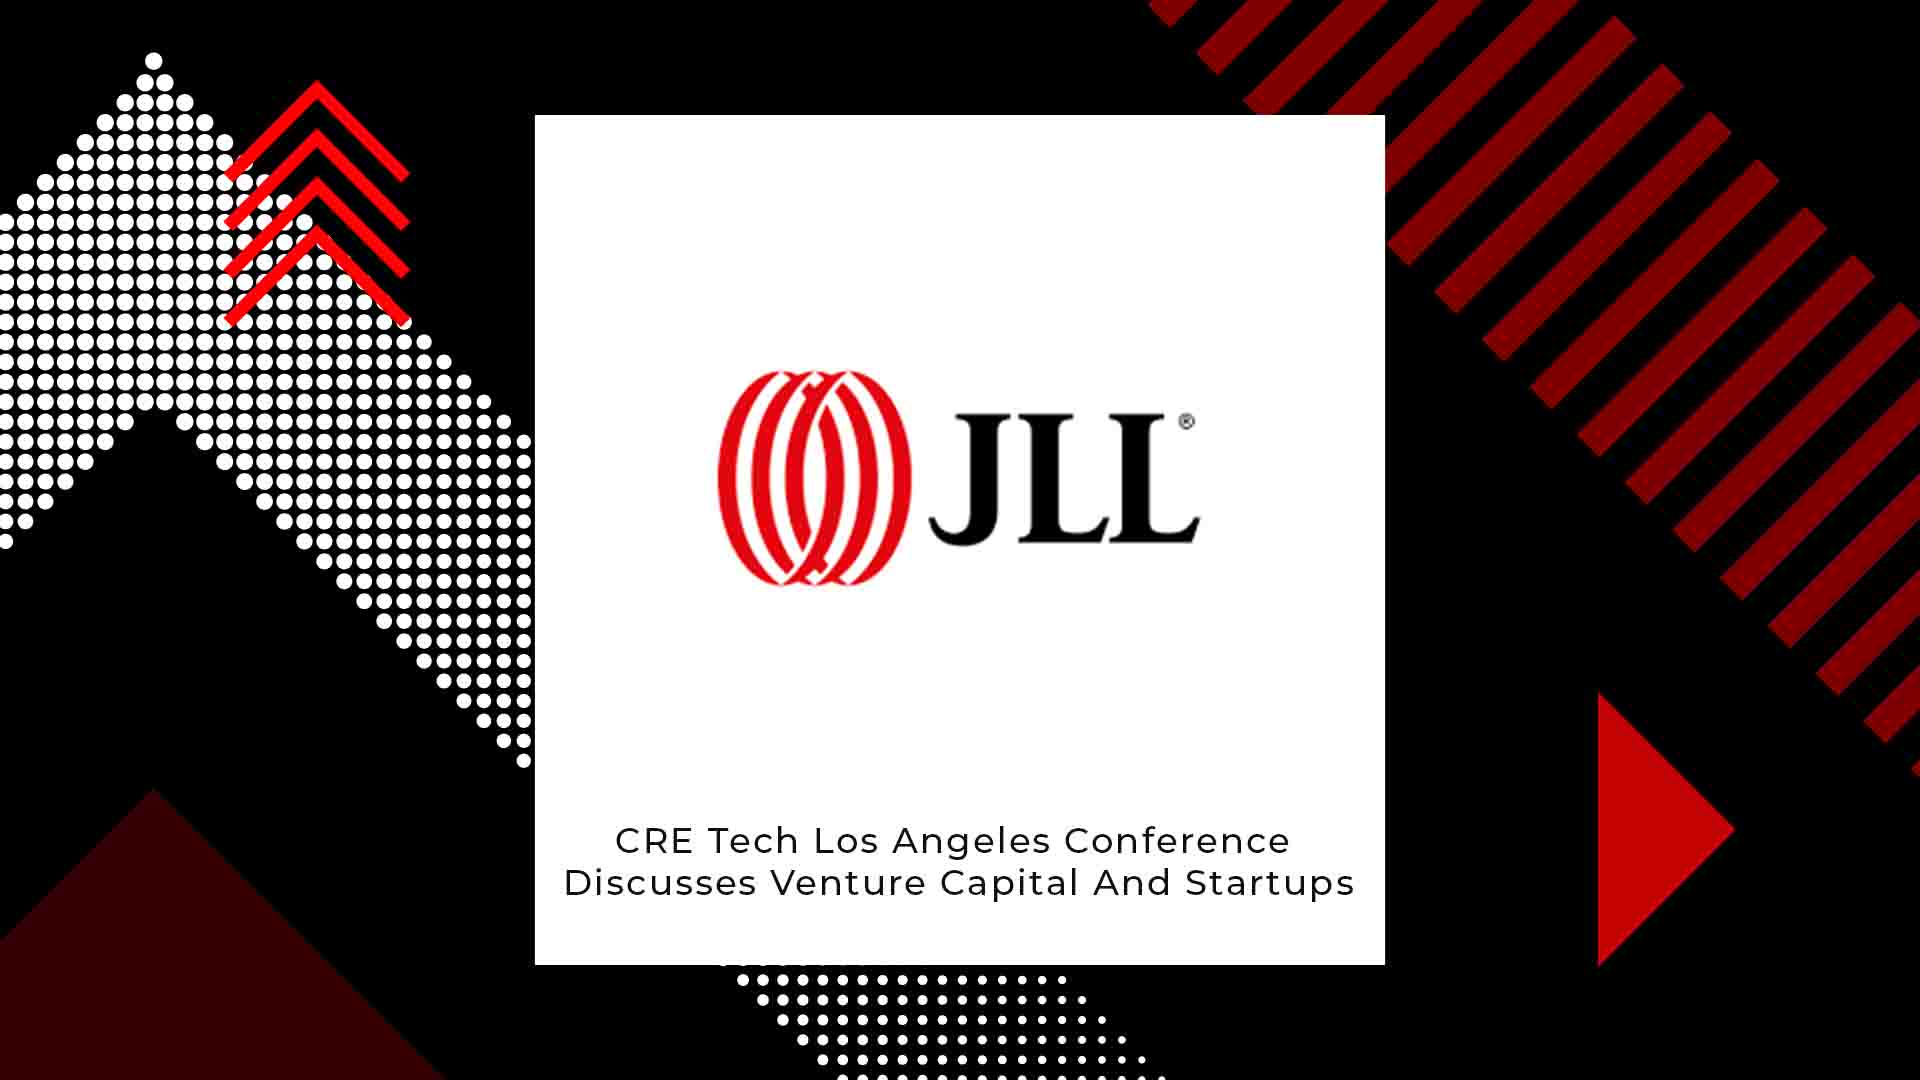 JLL Spark's Andrea Jang On Proptech Startups And Venture Capital